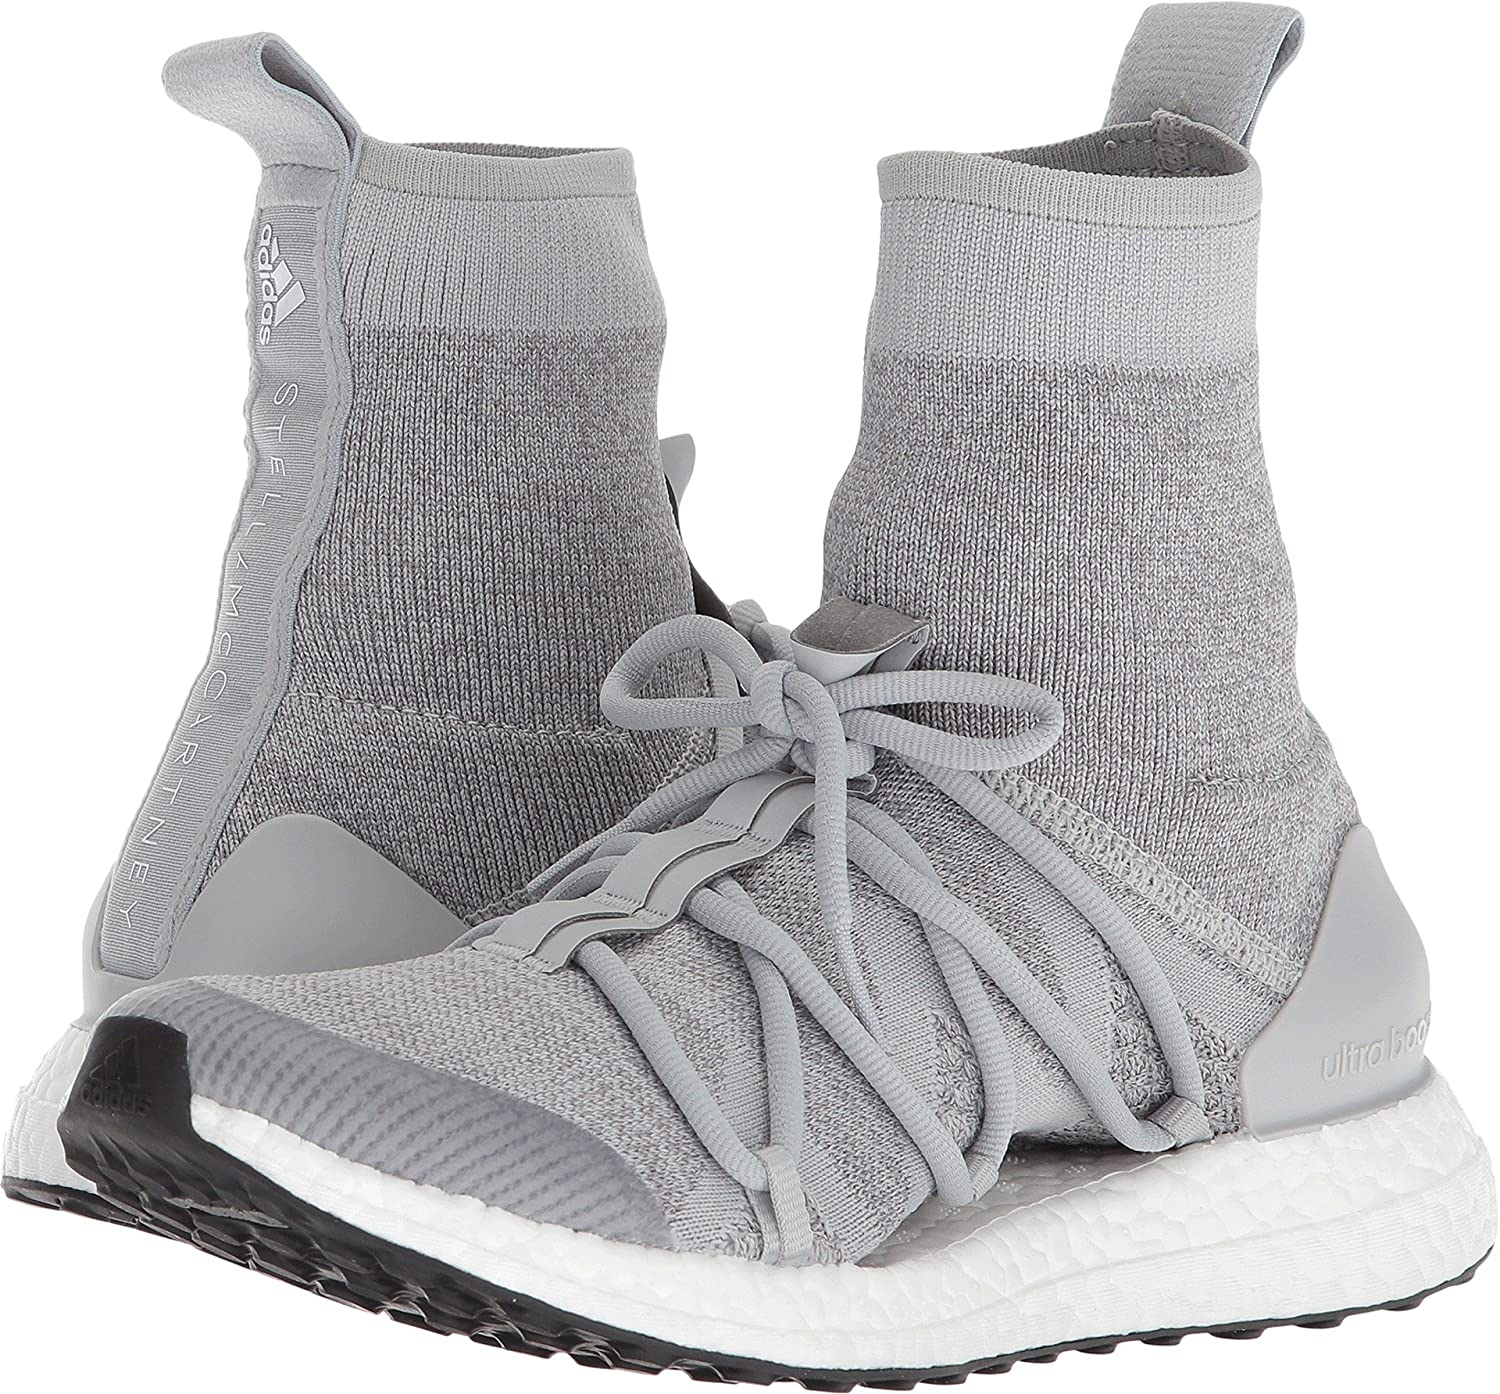 adidas by Stella McCartney Women's Ultraboost X Sneakers B078ZKJS6M 8.5 B(M) US|Stone/Core White/Eggshell/Grey/Smc